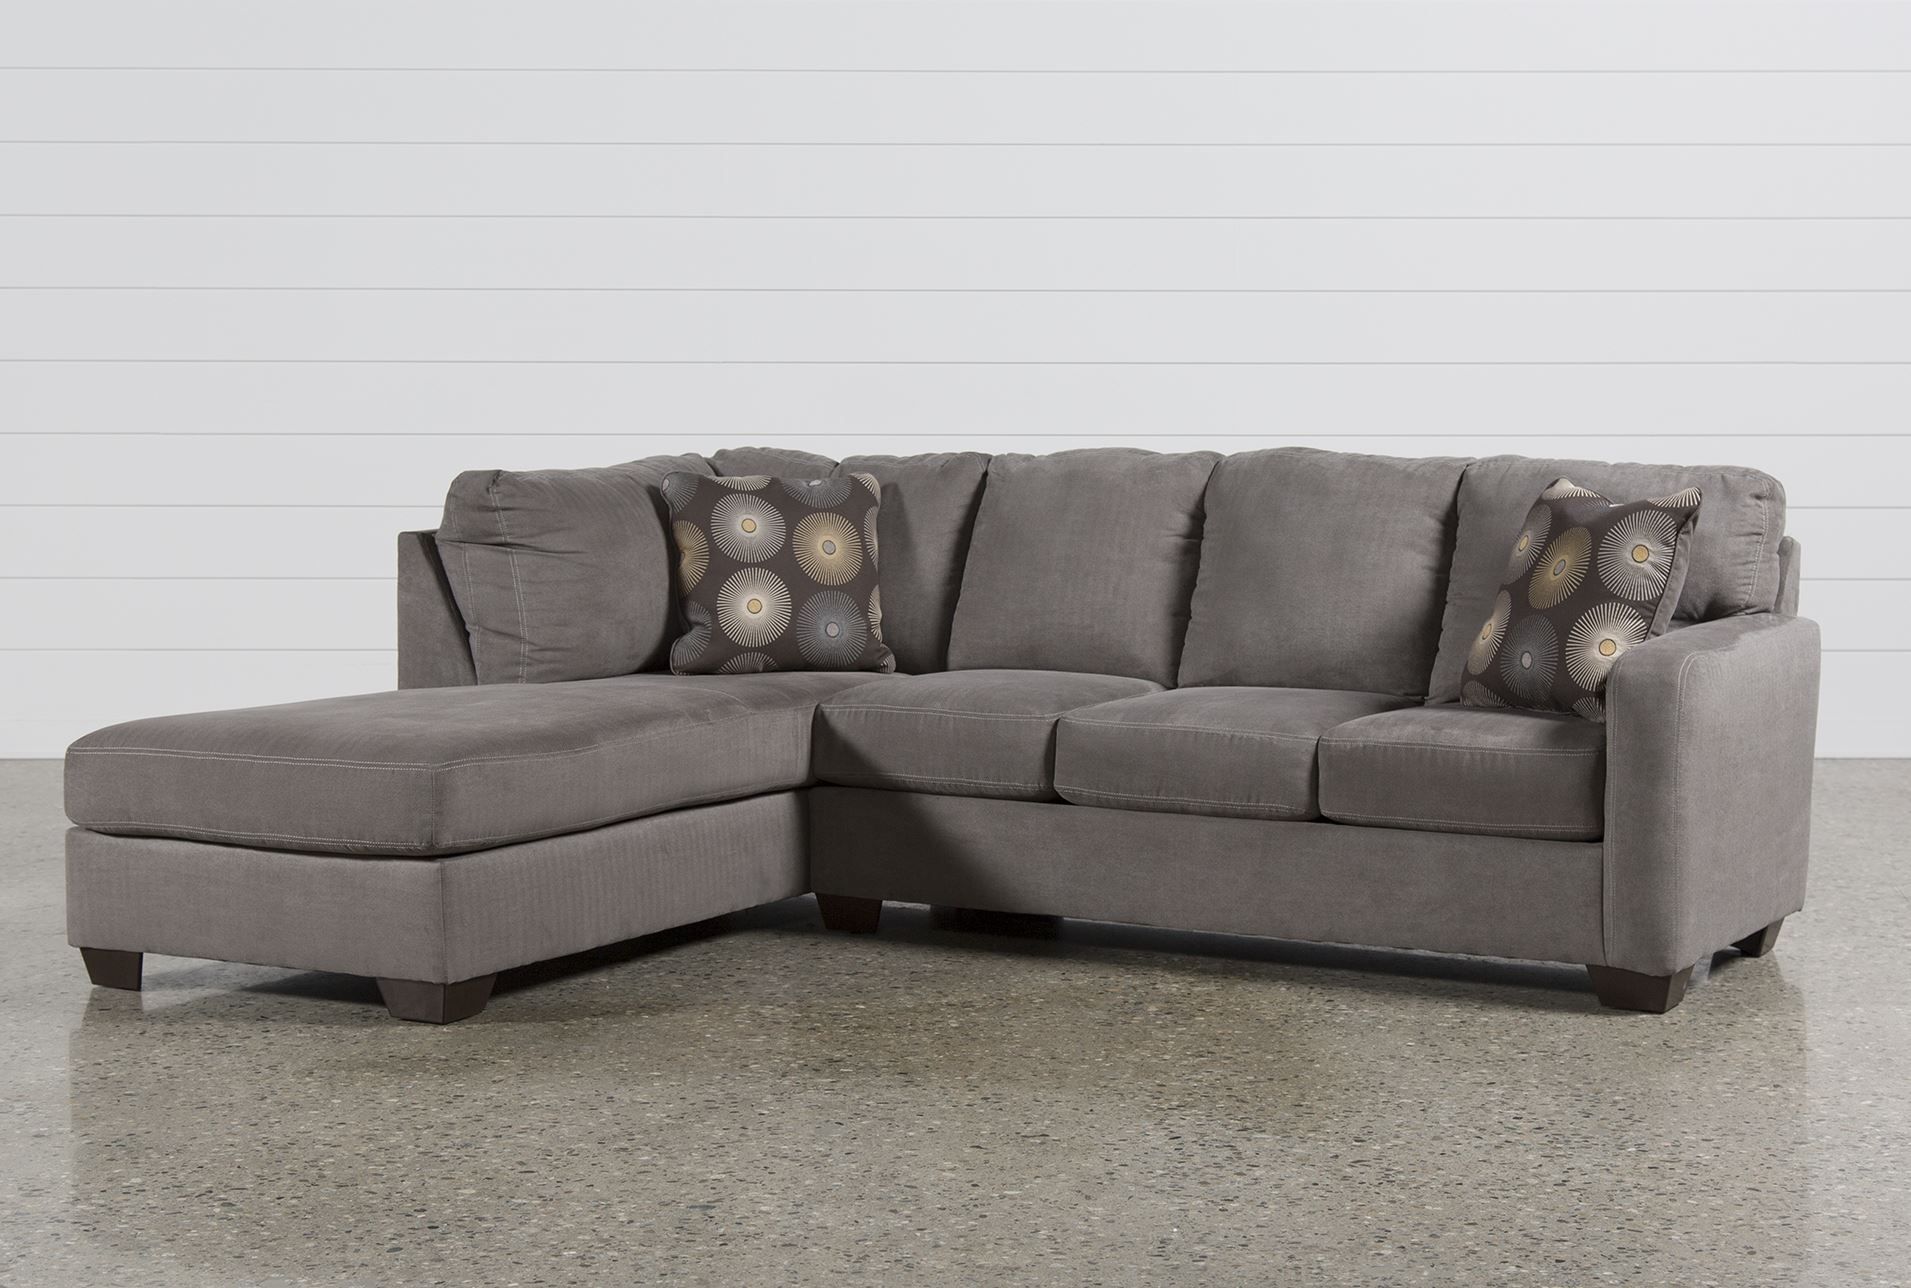 Laf Chaise Sectional Sofa | Baci Living Room pertaining to Malbry Point 3 Piece Sectionals With Laf Chaise (Image 22 of 30)